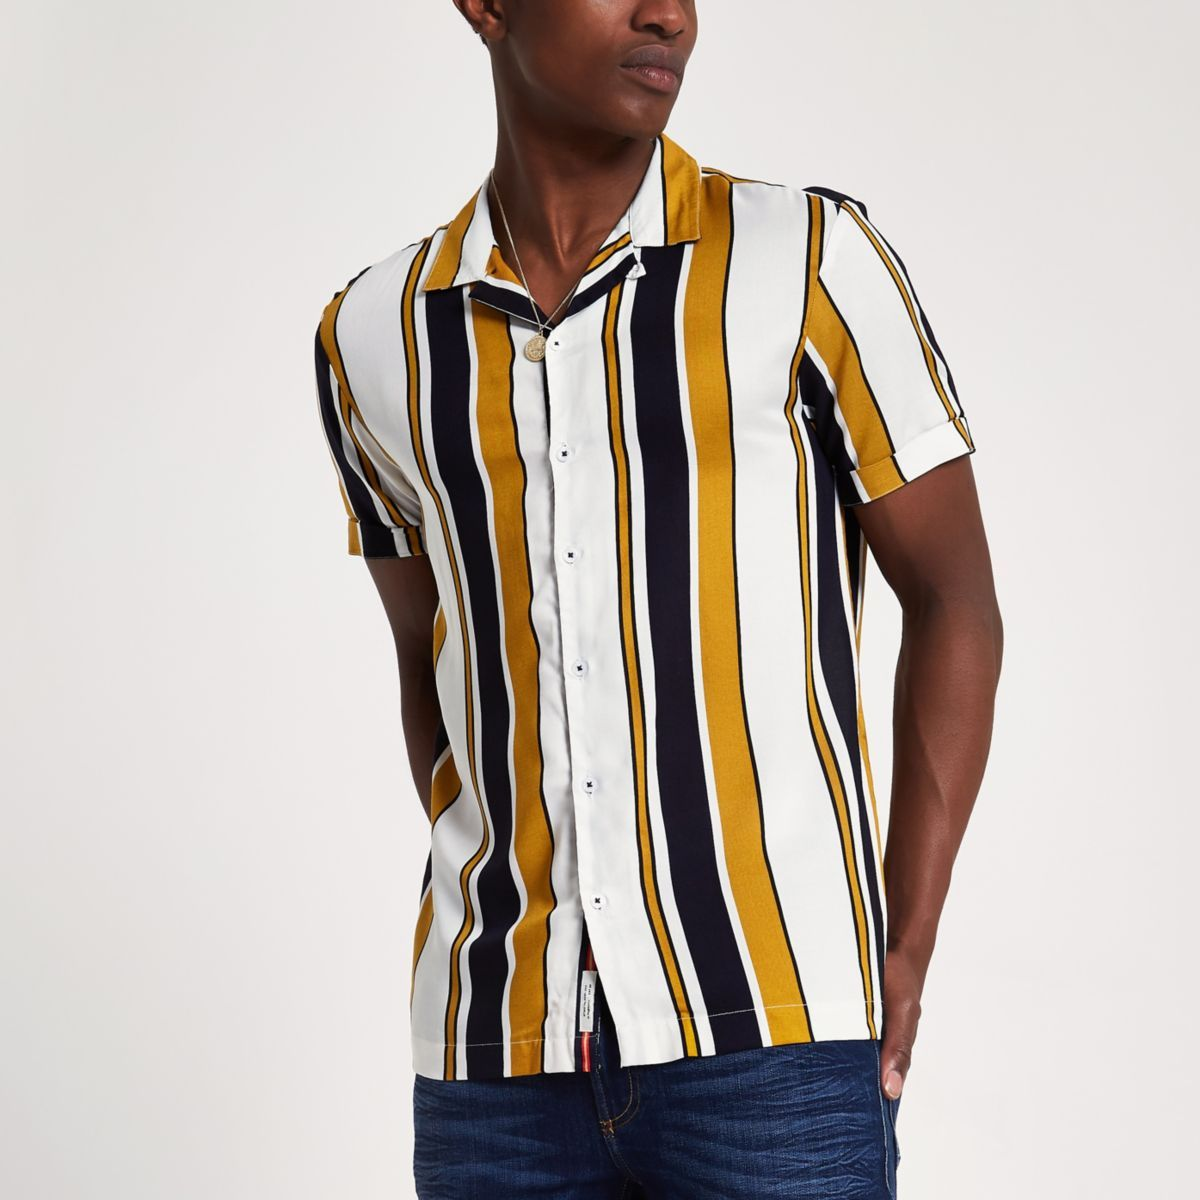 Chemise Rayee Jaune A Col A Revers Et Manches Courtes Chemises A Manches Courtes Chemises Homme Mens Shirts Shirts Mens Tops